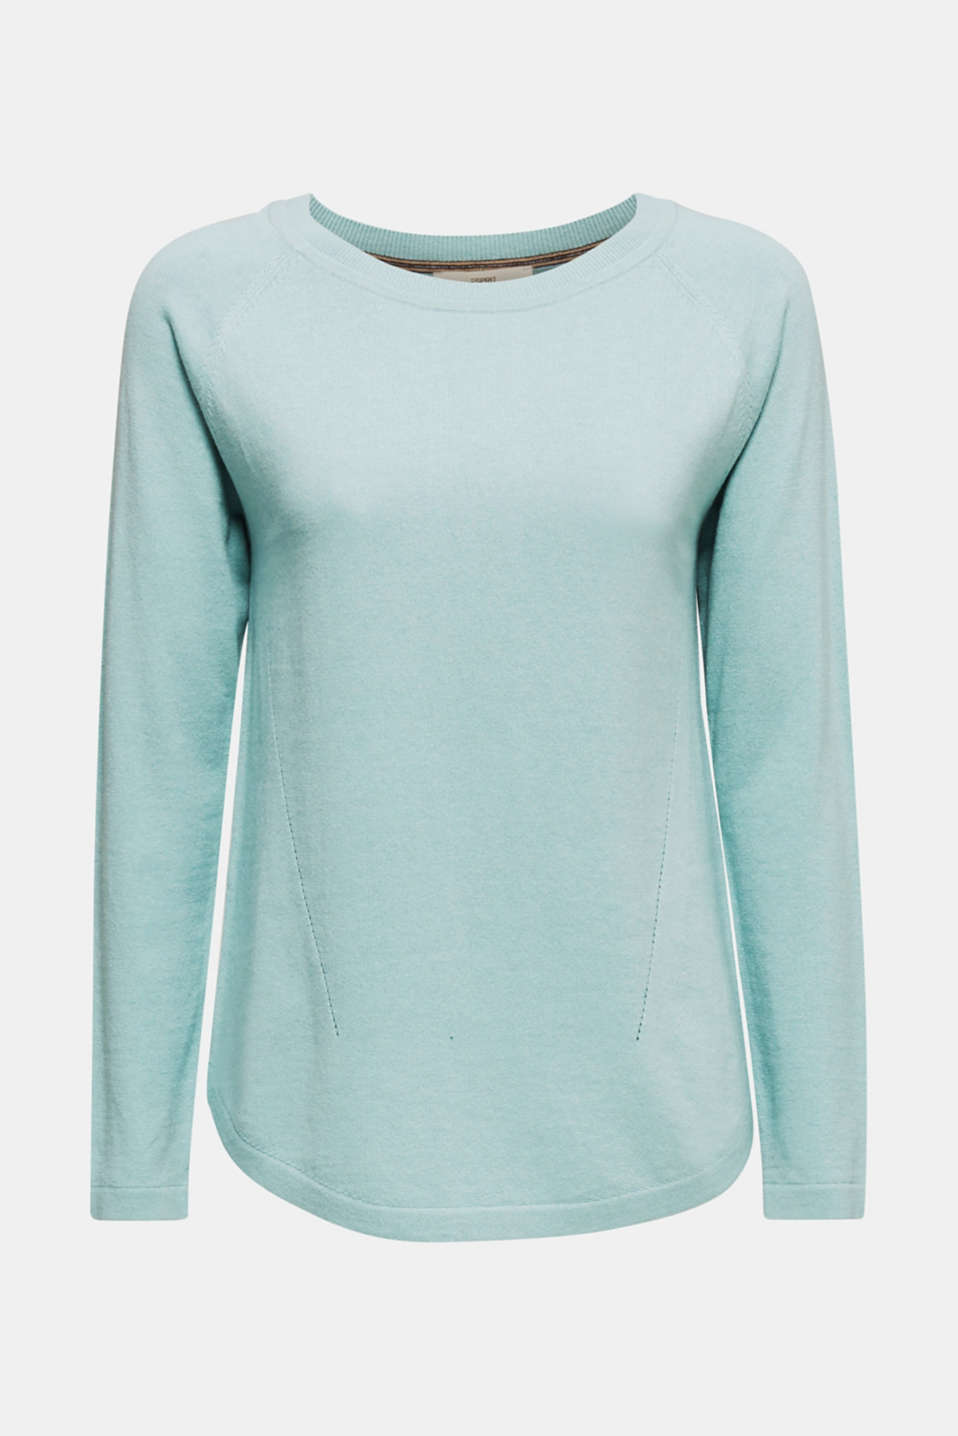 With linen: Jumper with open-work patterned details, LIGHT AQUA GREEN, detail image number 6